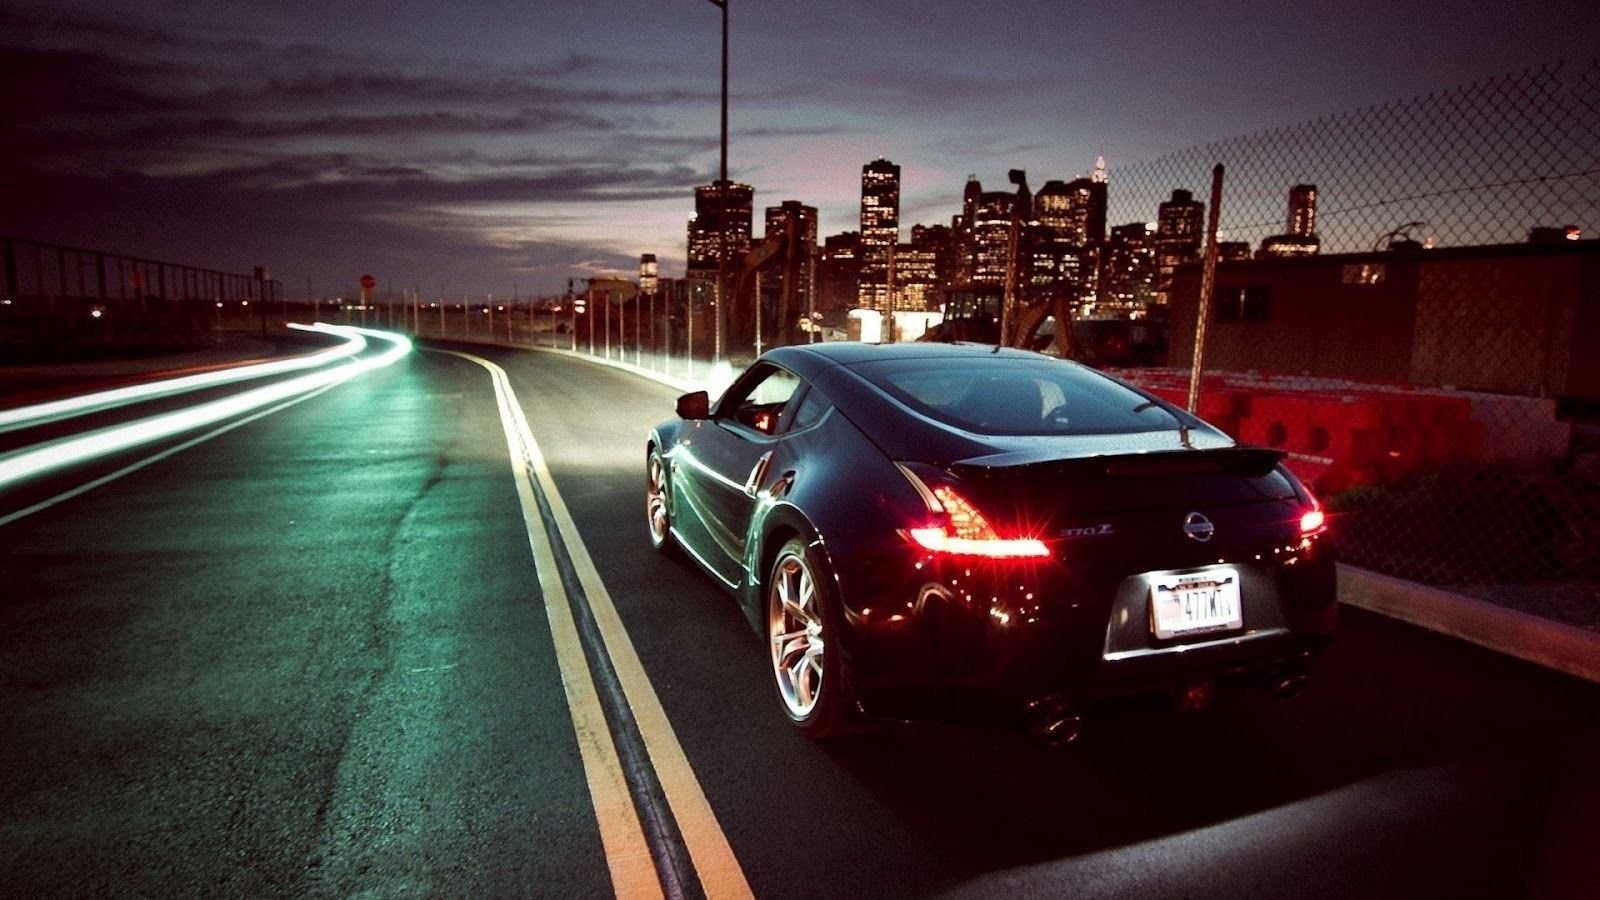 Latest 2014 Nissan 370Z Nismo Car Wallpapers Back To 2014 Nissan Free Download